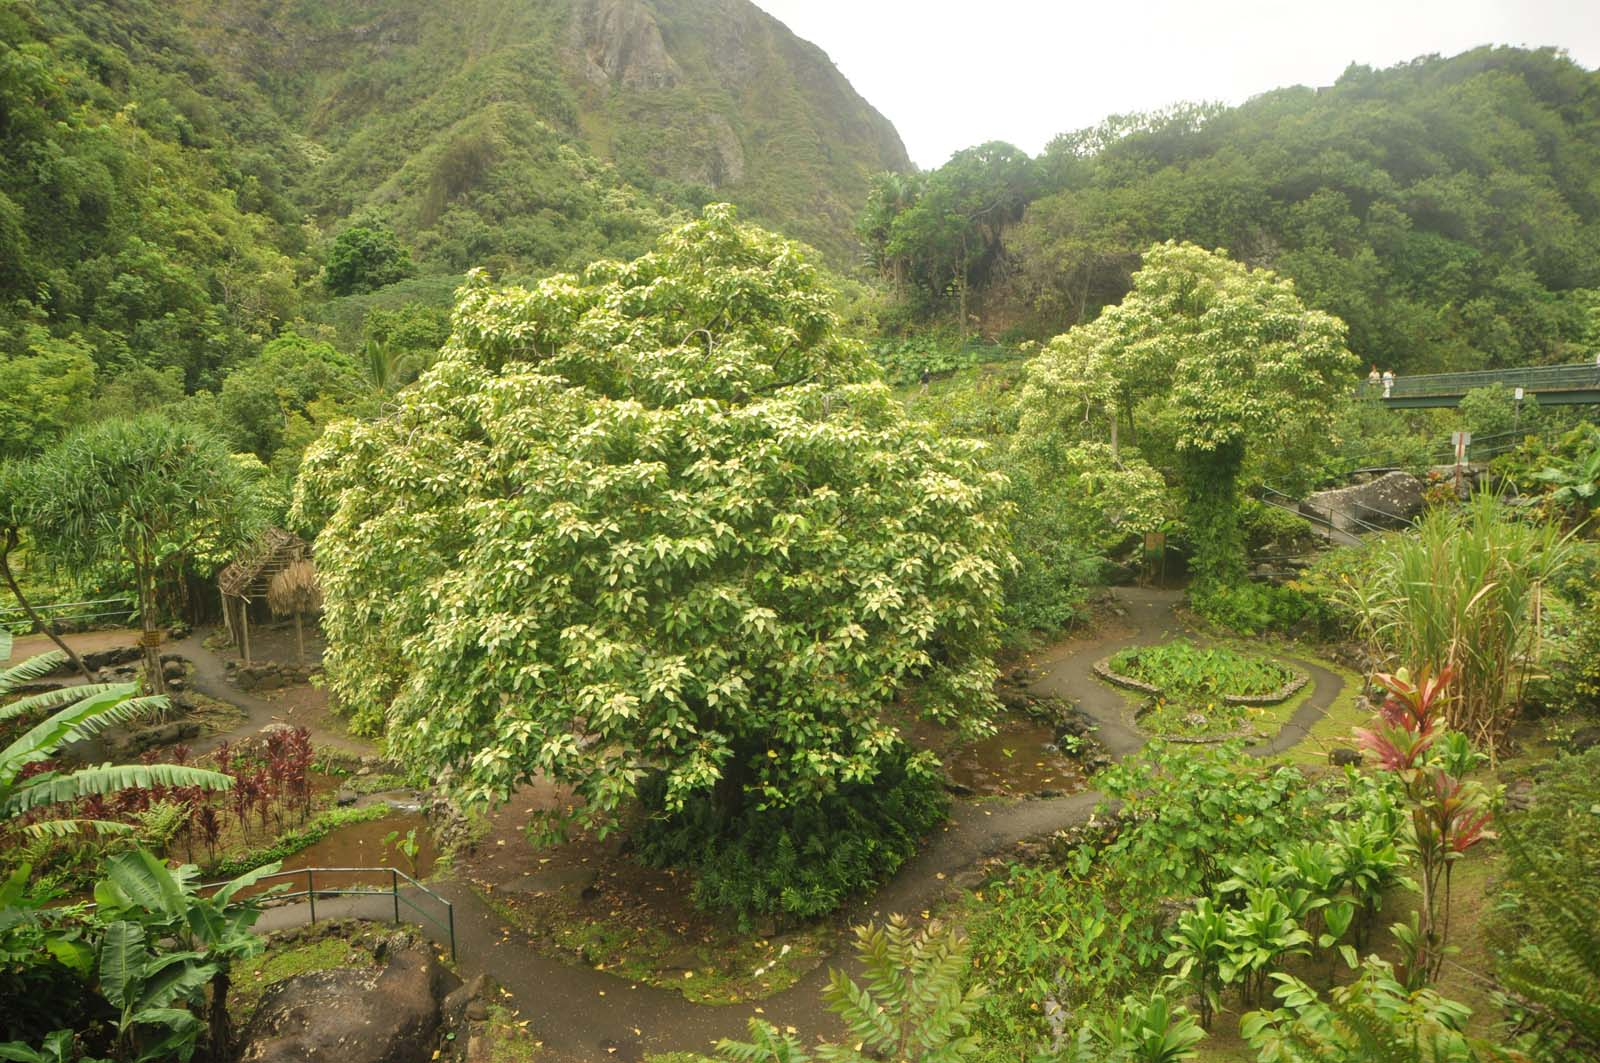 002_iao_valley_maui_hawaii